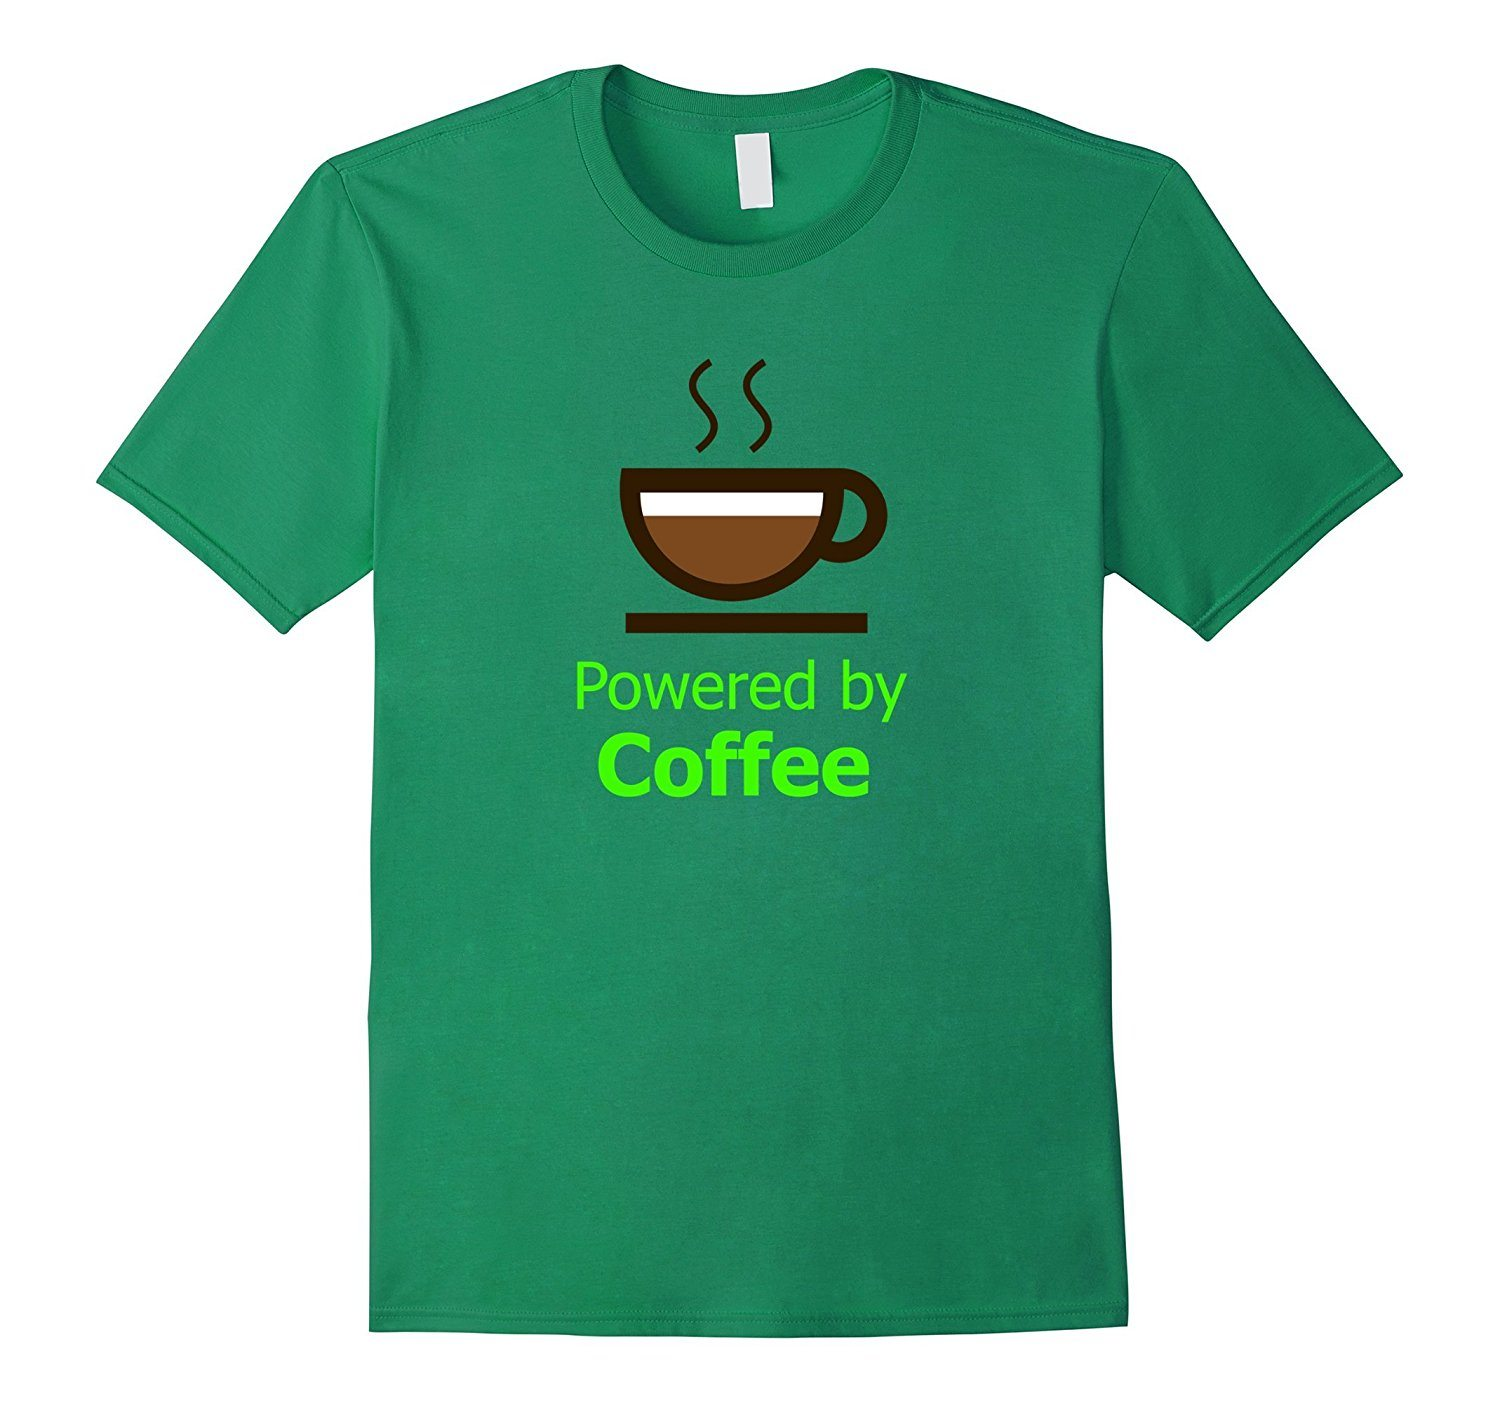 Powered by Coffee Tshirt Funny Coffee Drinker T-shirt.